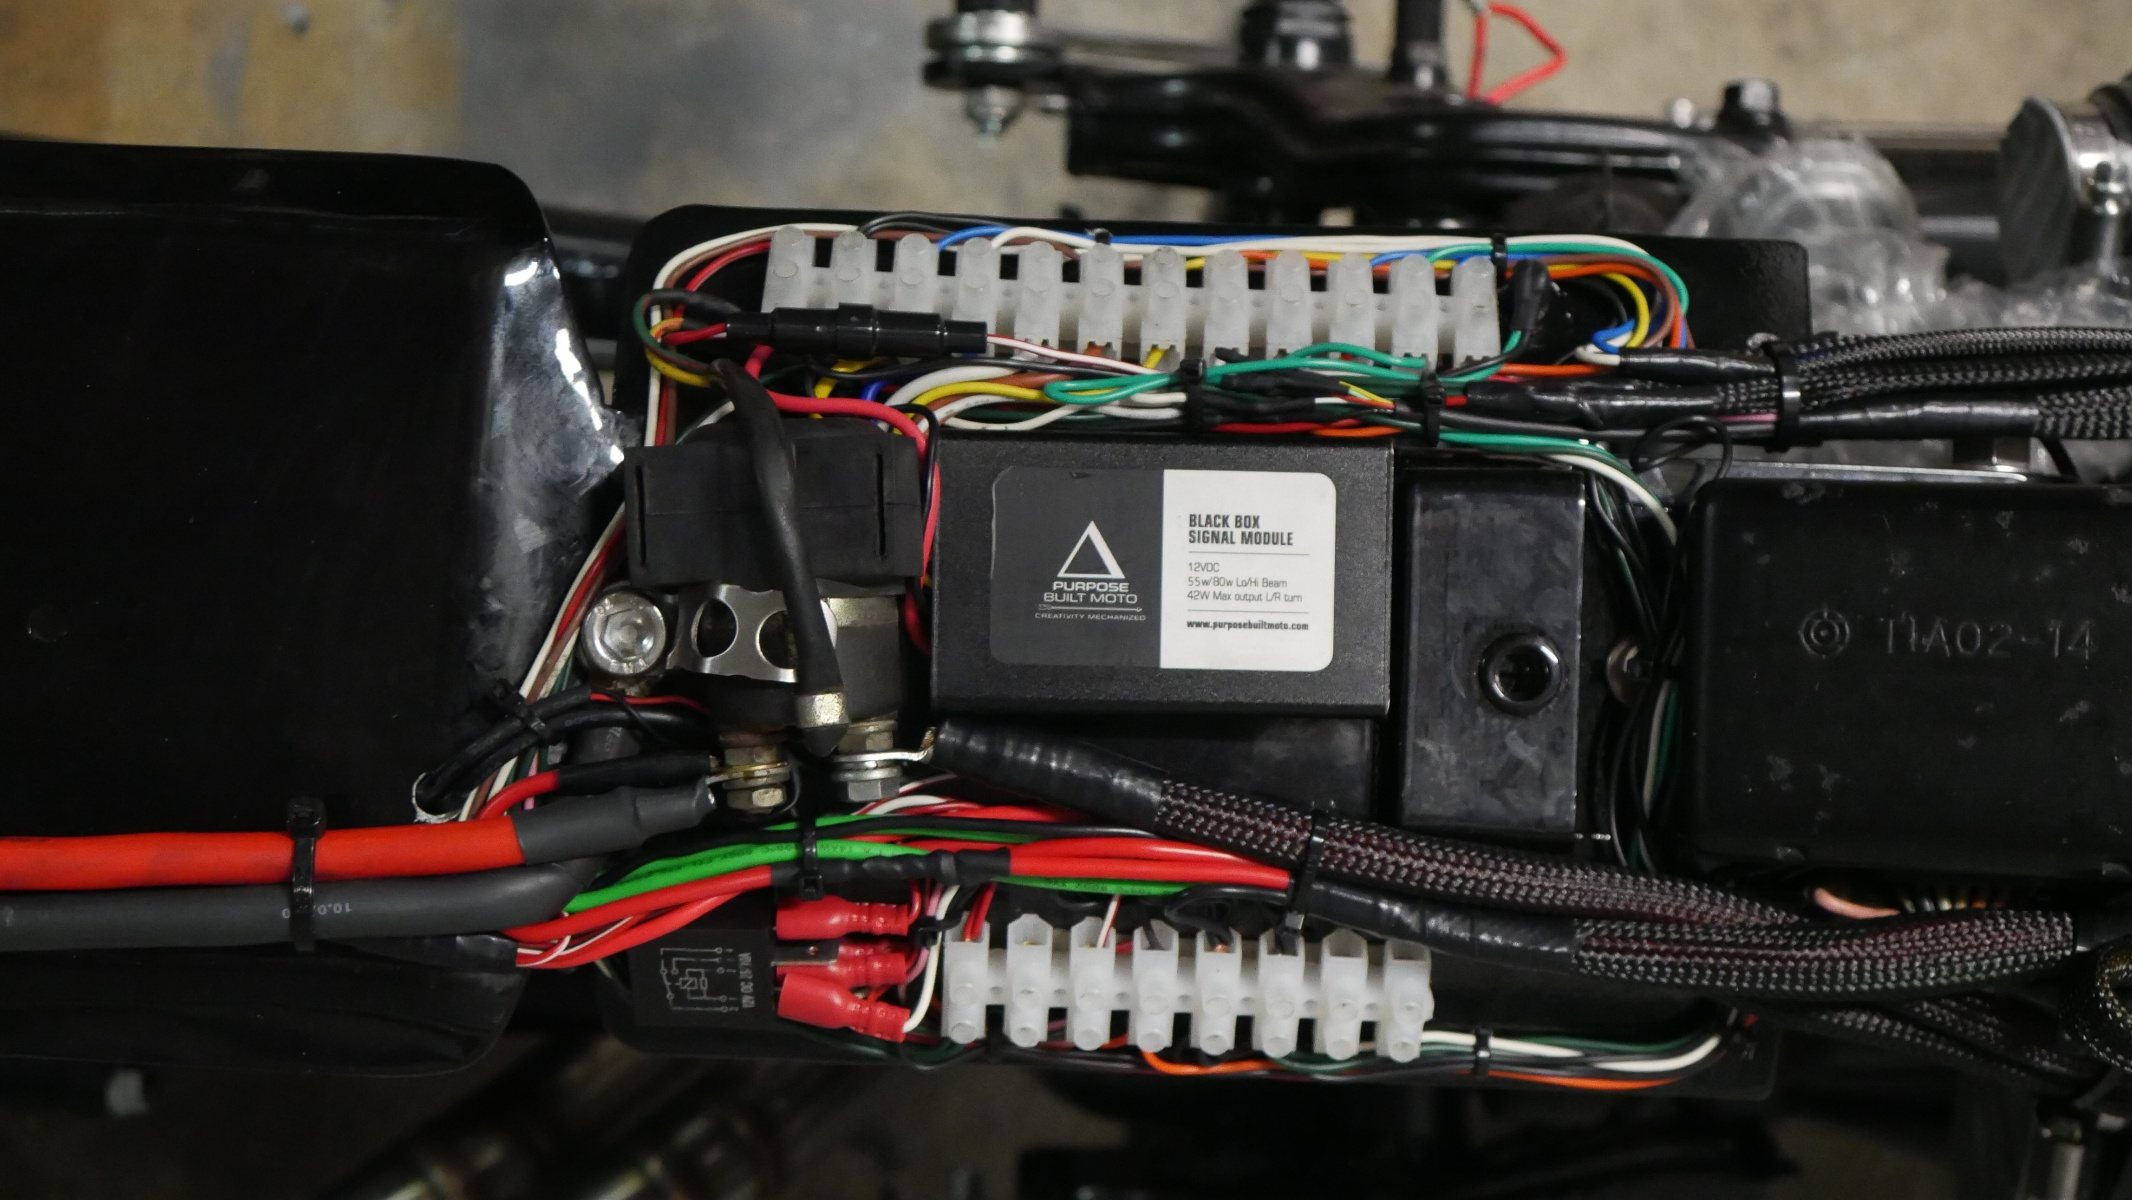 Top 5 Wiring Mistakes To Avoid When Your Custom Bike Home Main Box Push Button Flasher Module